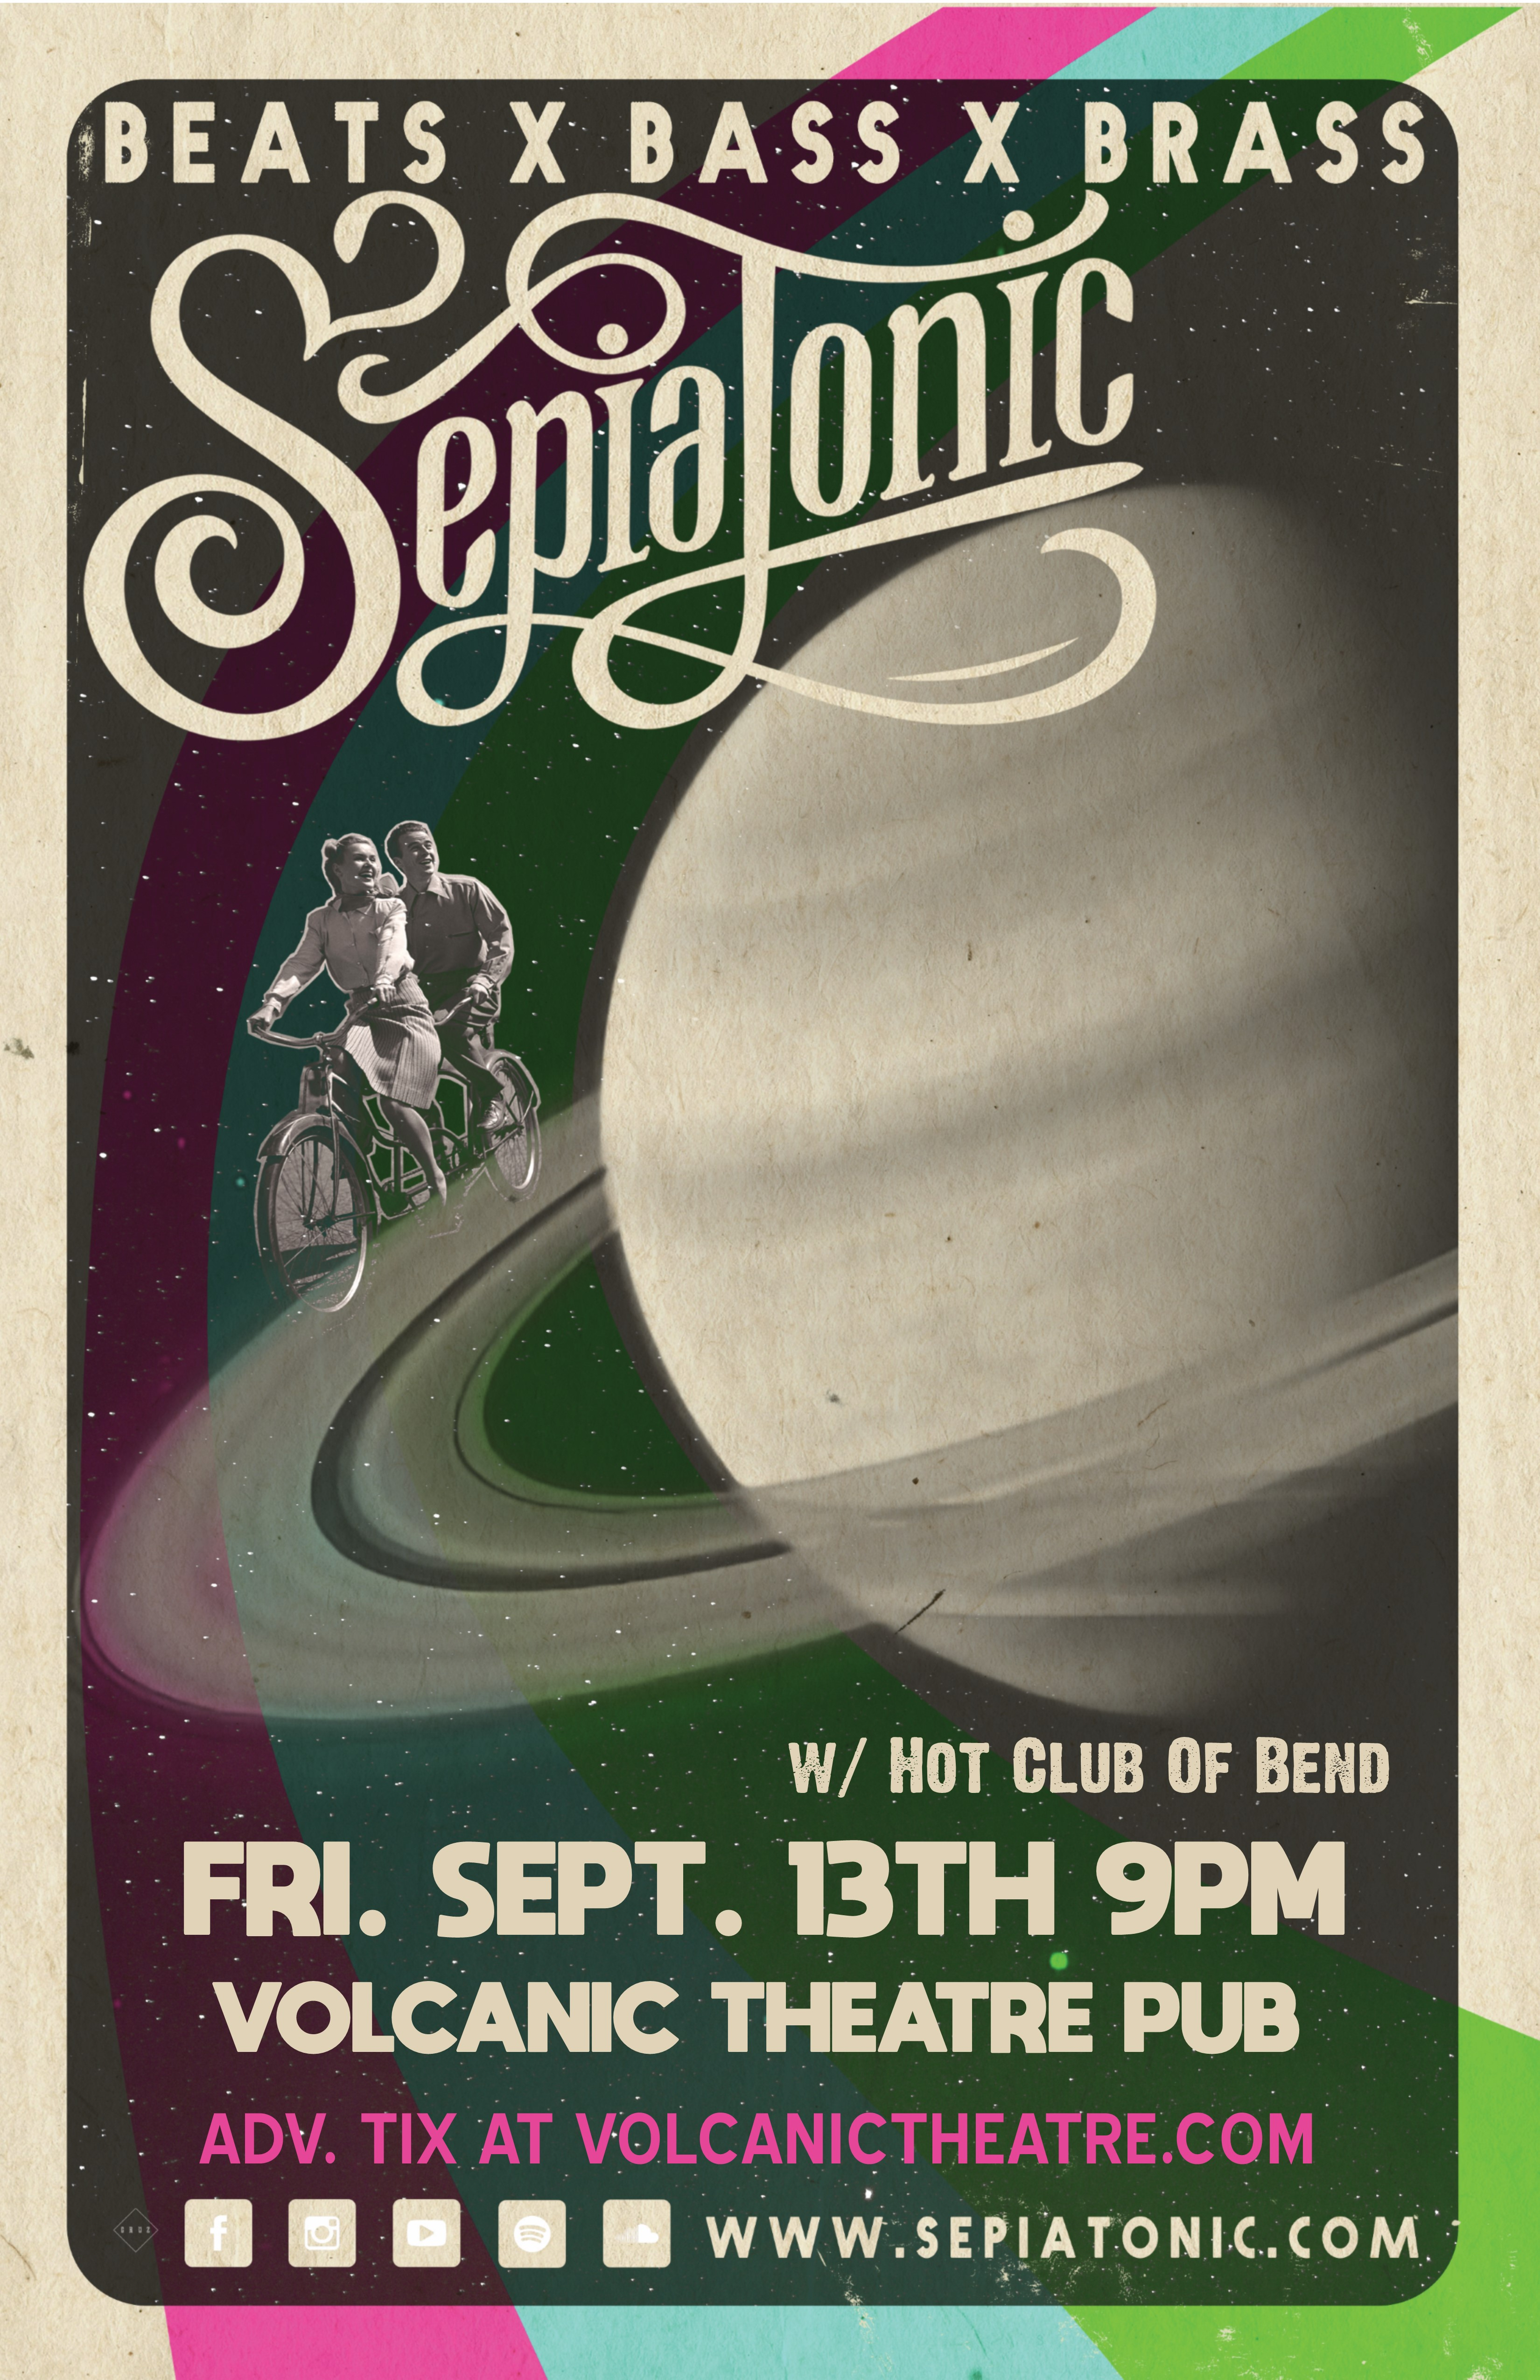 Sepiatonic w/ Hot Club Of Bend at Volcanic Tickets   Volcanic Theatre Pub    Bend, OR   Fri, Sep 13 at 9pm   Bend Ticket